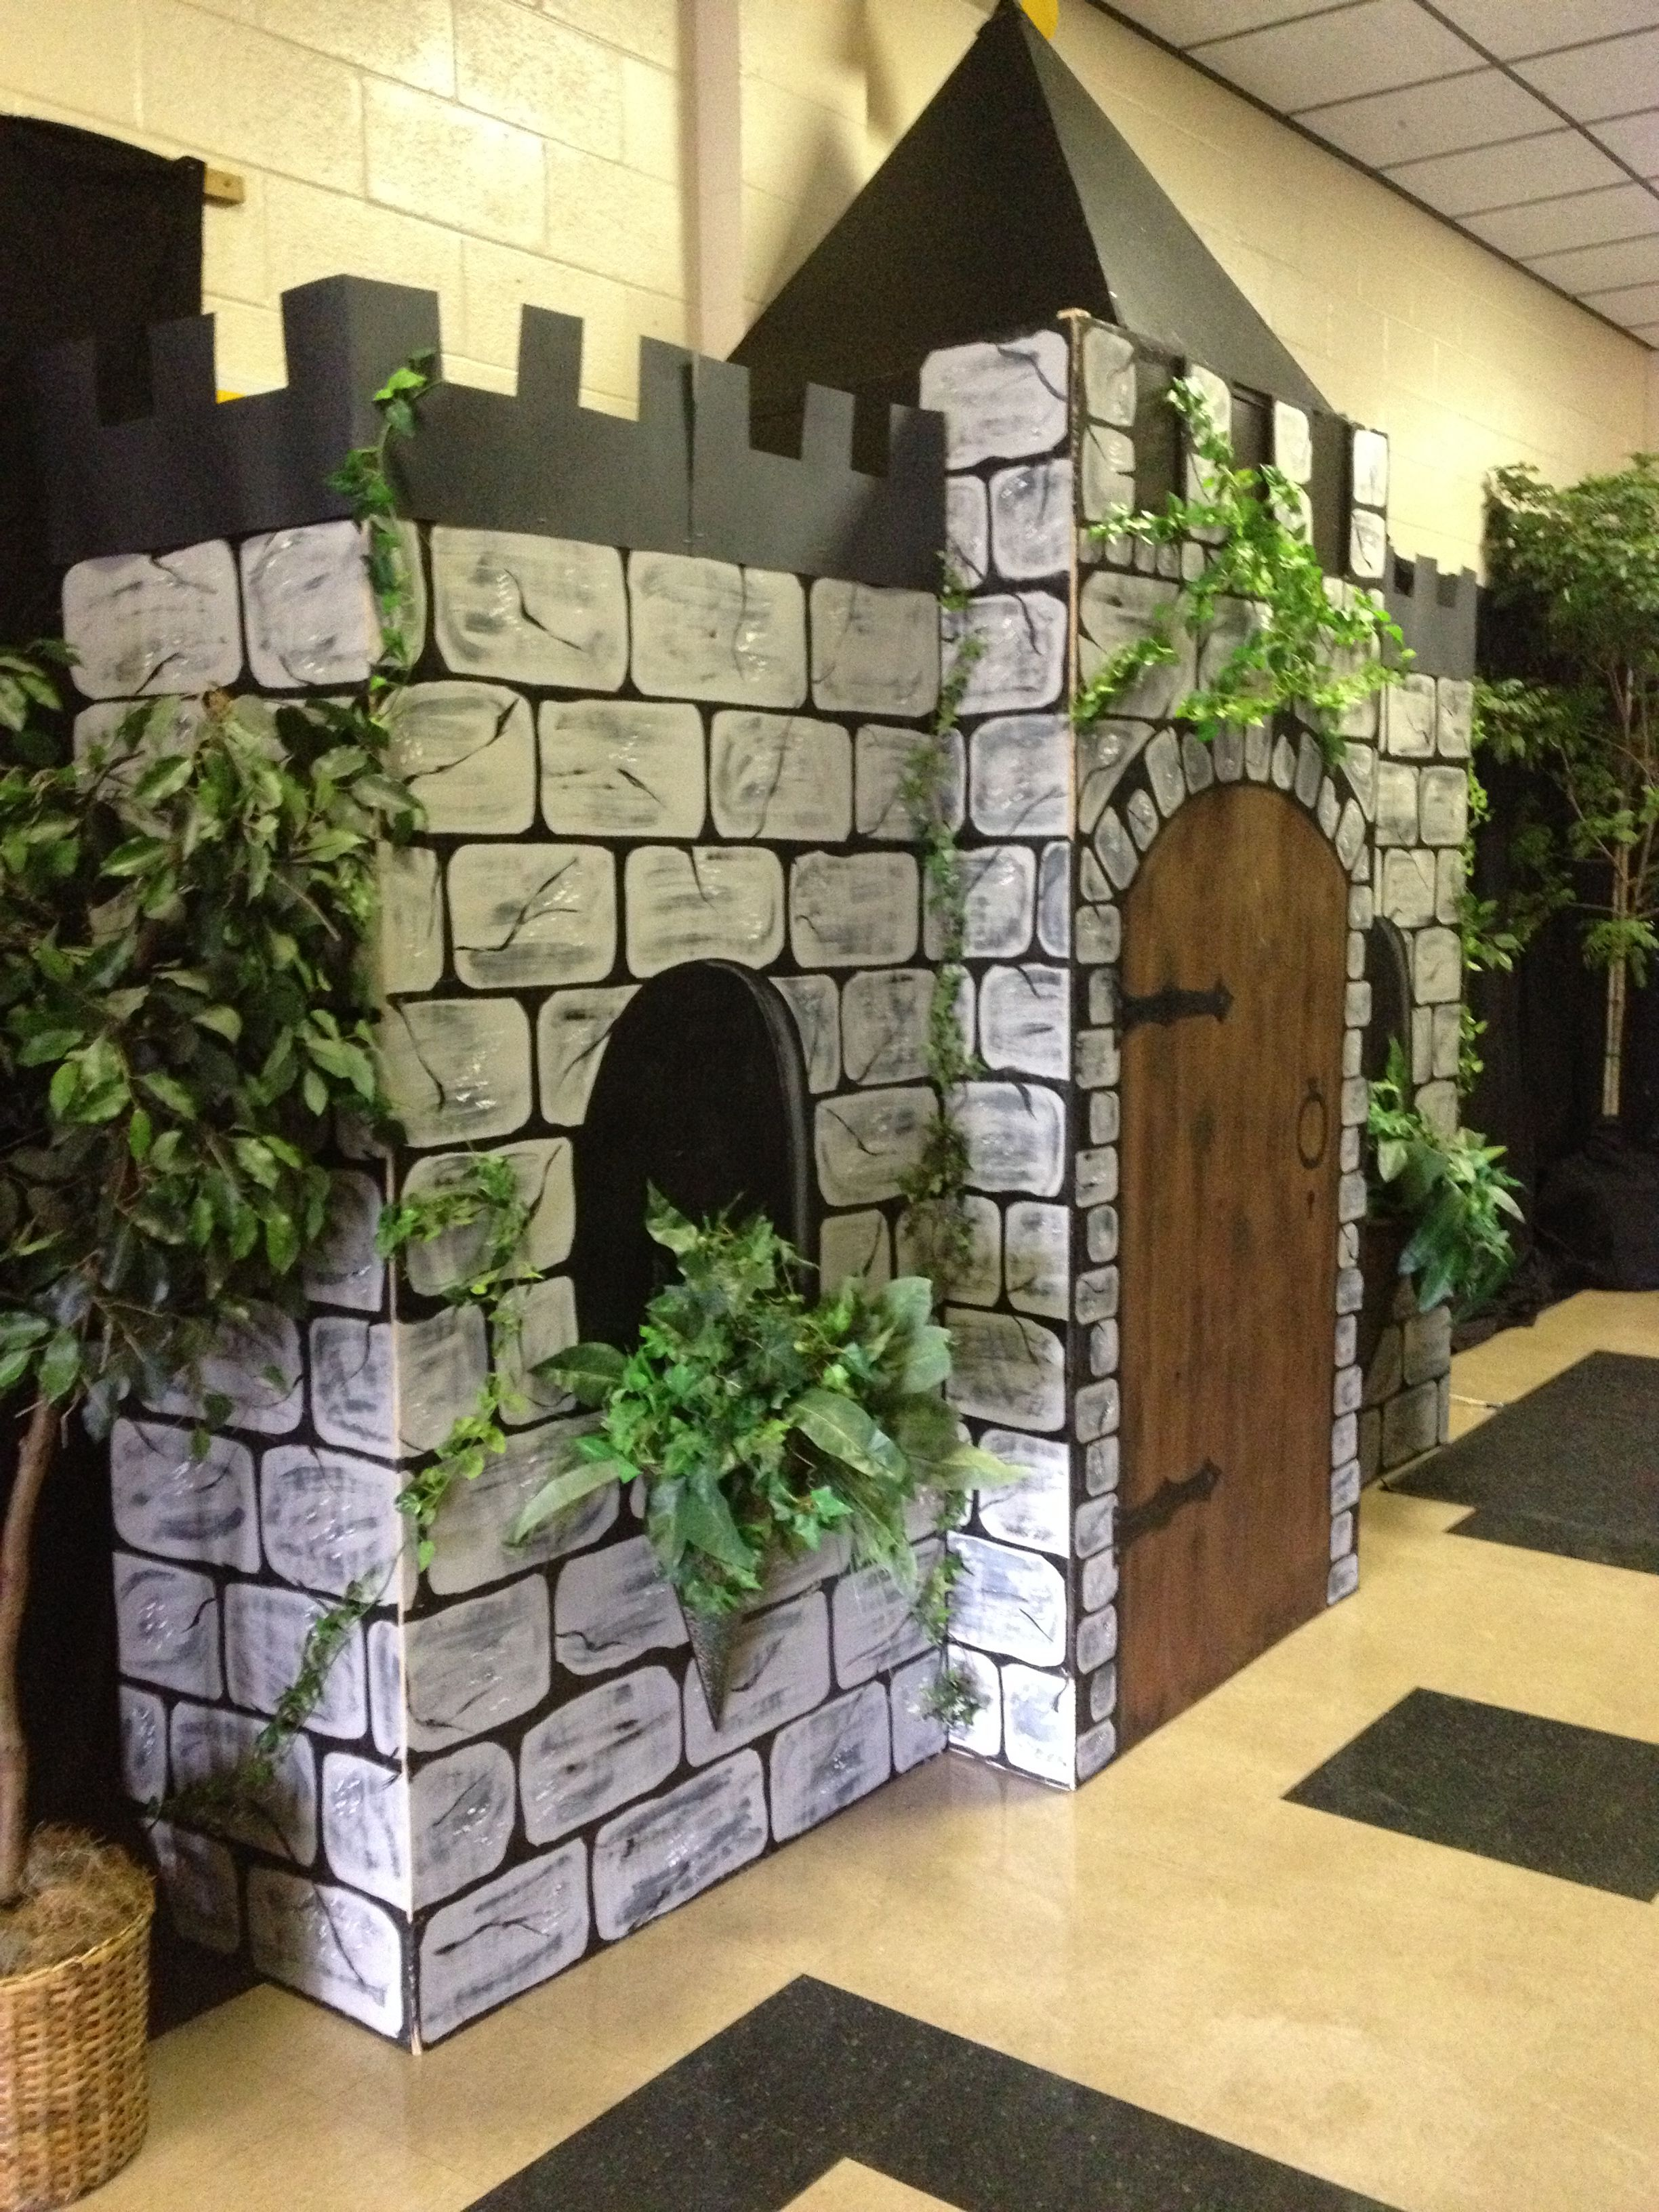 Castle For Homecoming Decor Bishop Verot My Own Pins Cardboard Castle Castle